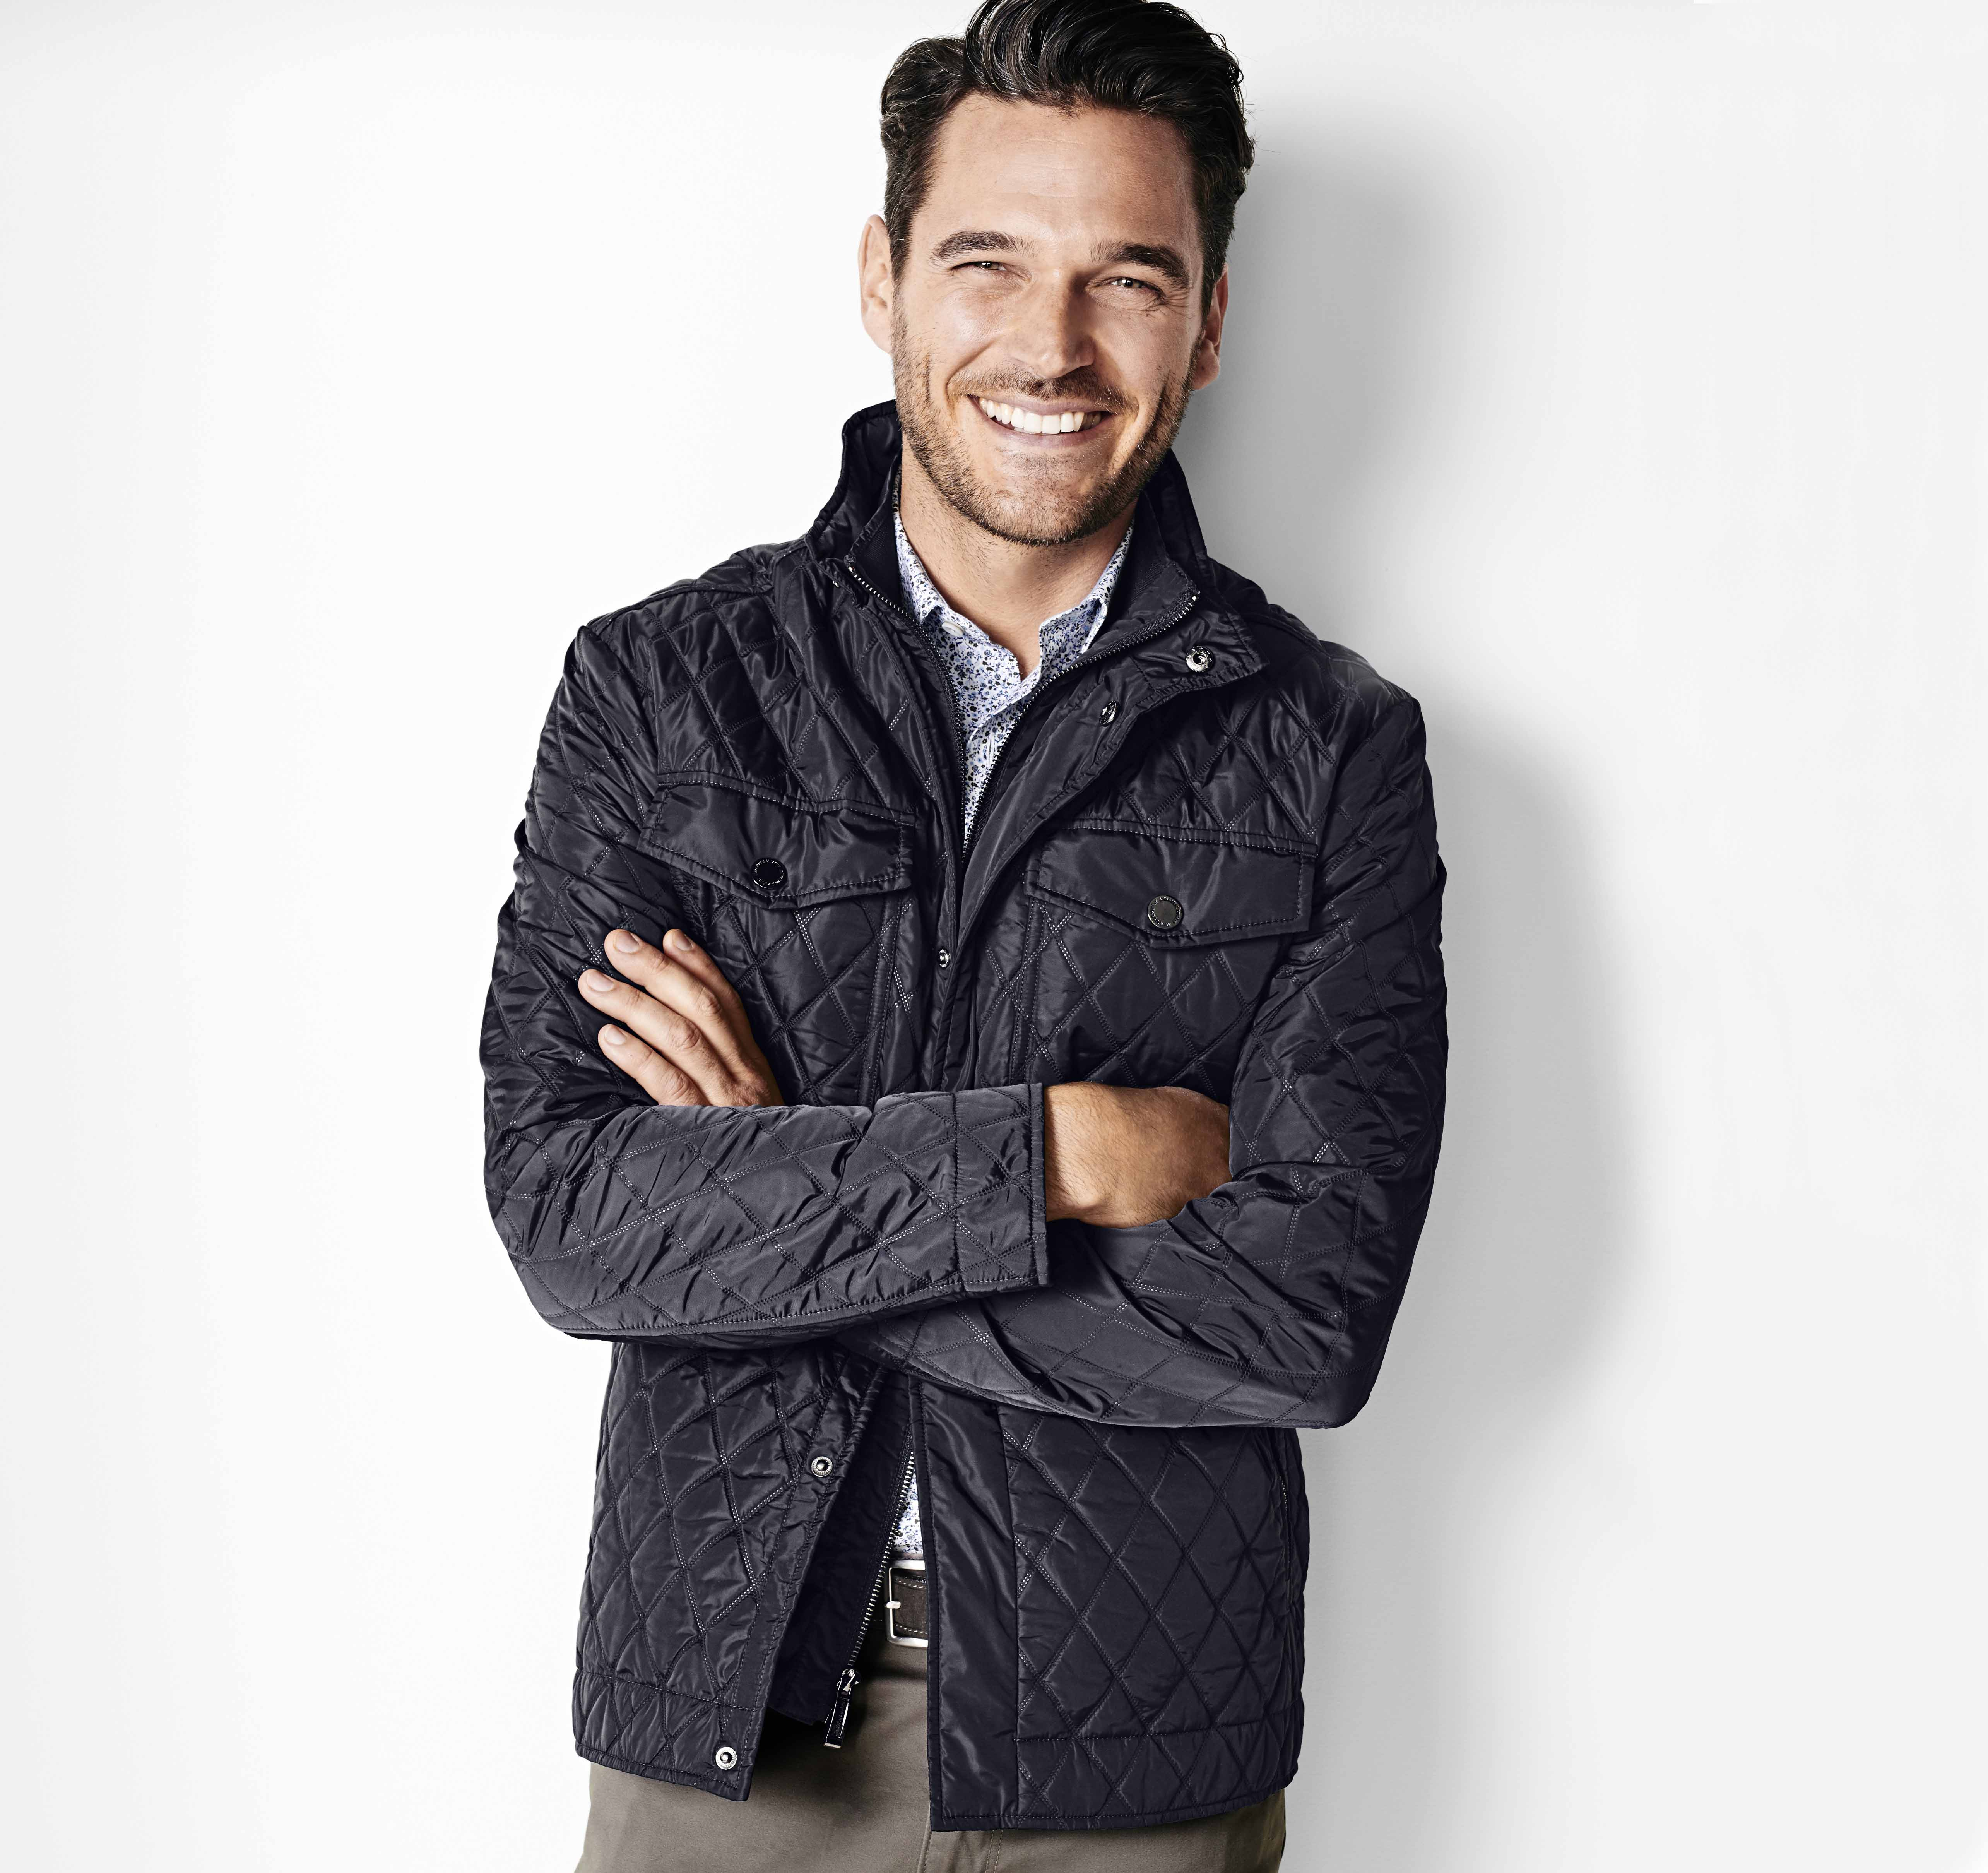 clothing quilted lauren lyst ralph s product olive trim blue jacket gallery women quilt normal suede polo in navy aviator coat litchfield